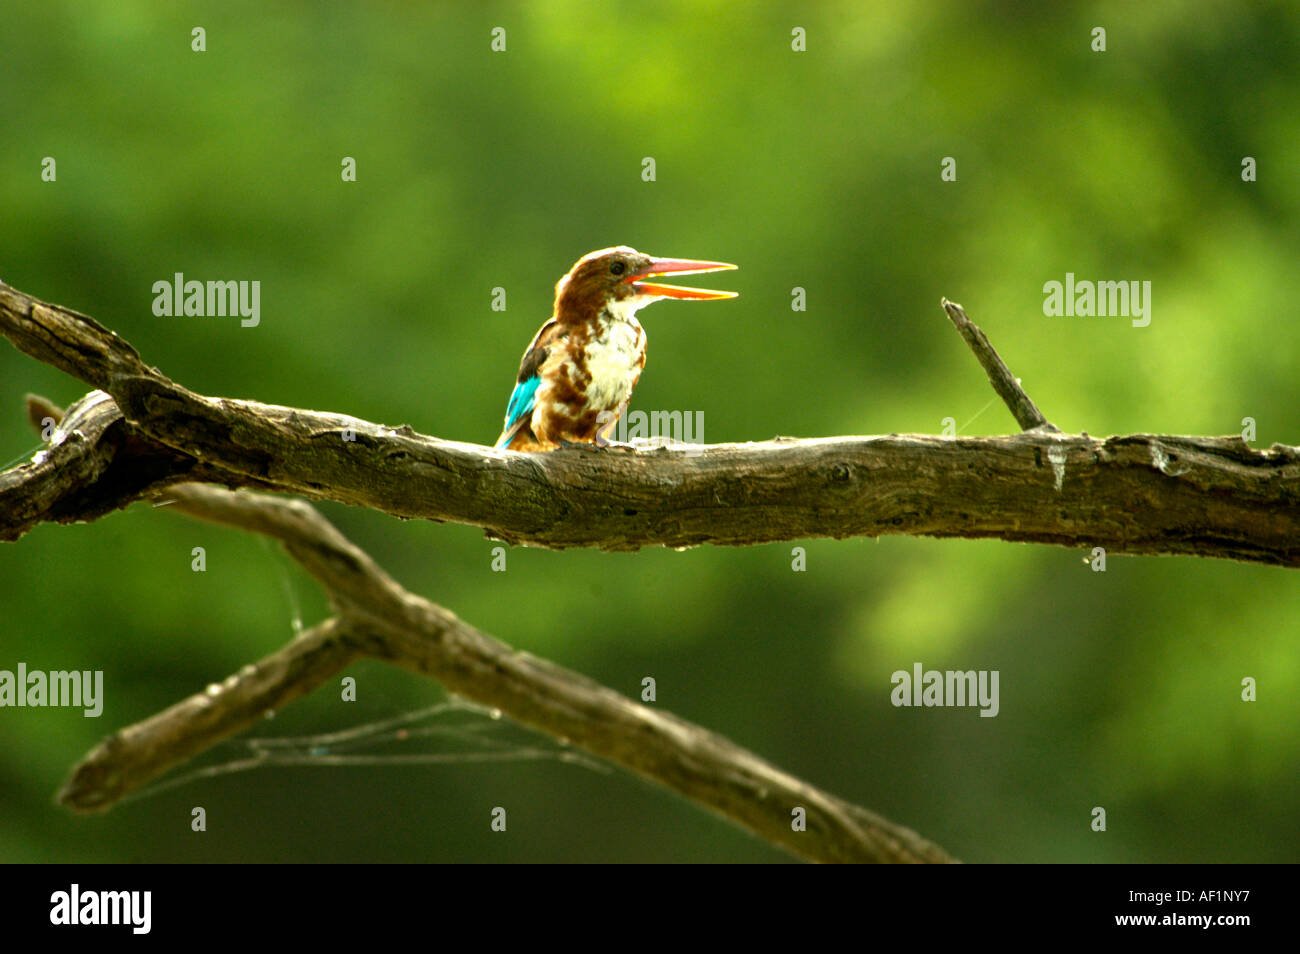 WHITE BREASTED KINGFISHER IN BHARATPUR BIRD SANCTUARY RAJASTHAN - Stock Image